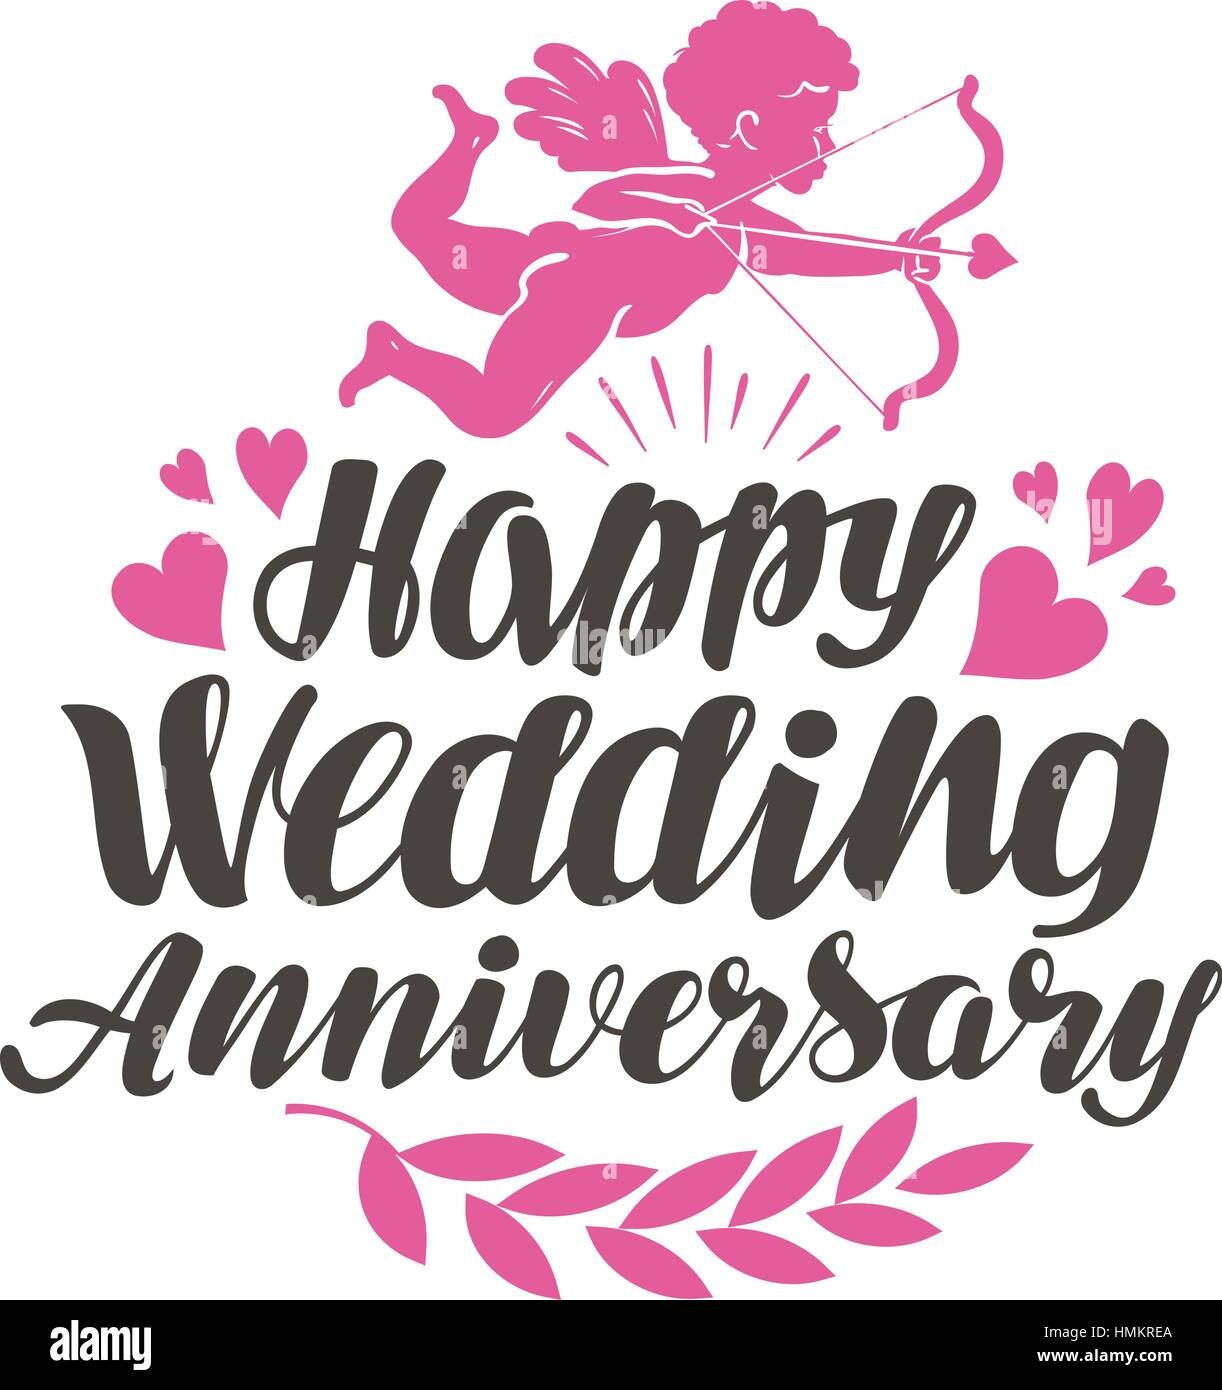 happy wedding anniversary label with beautiful lettering calligraphy vector illustration isolated on white background